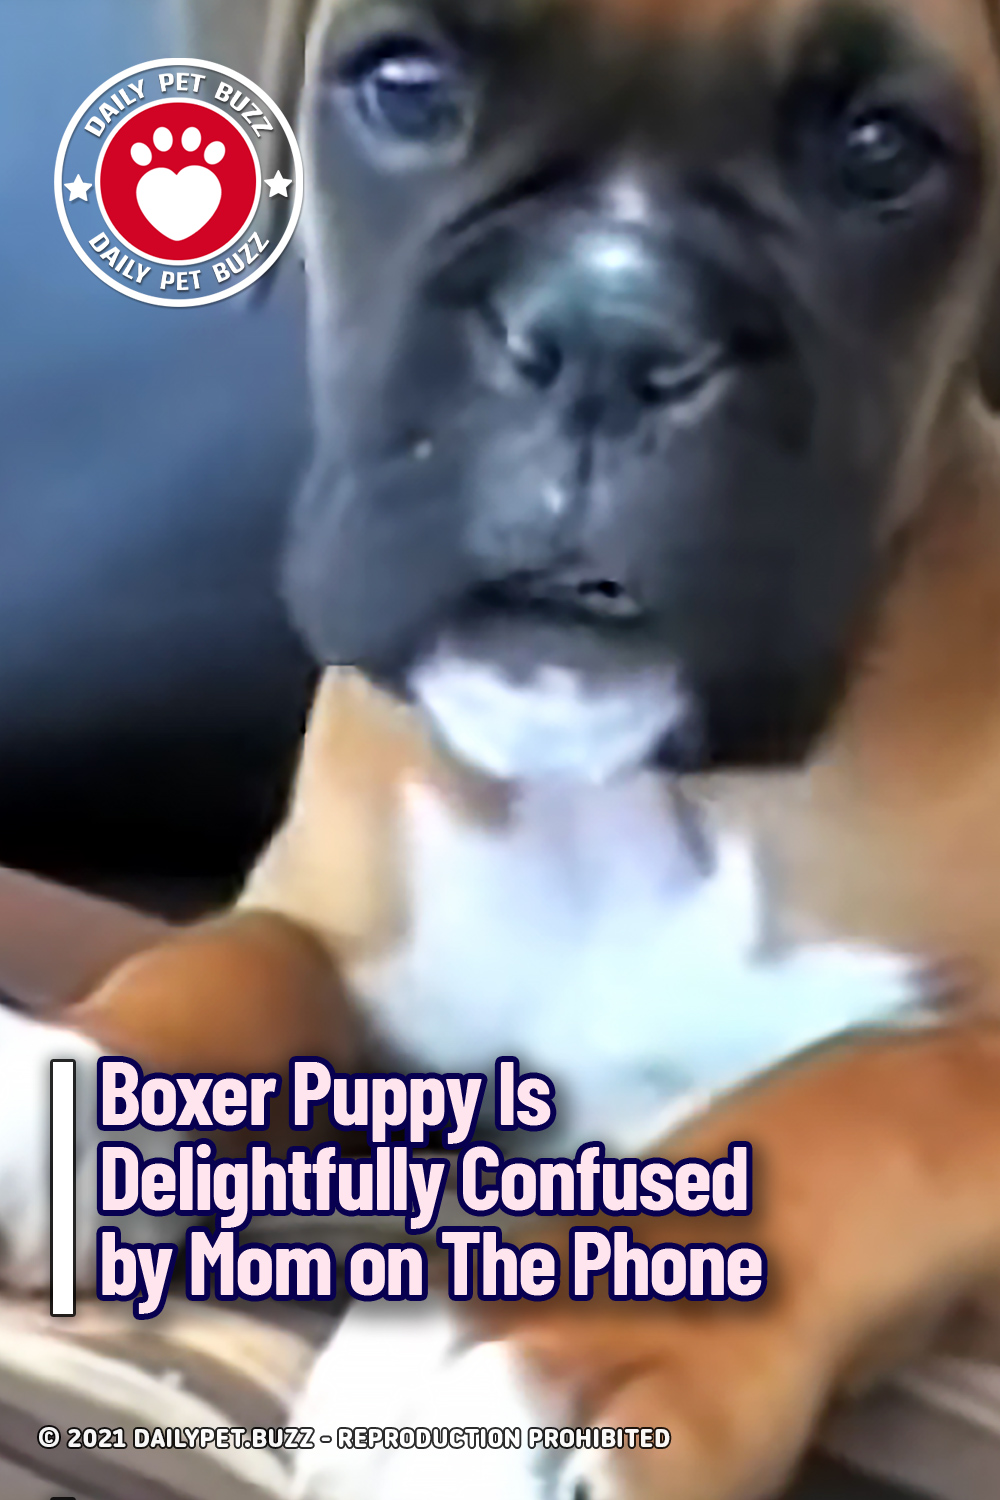 Boxer Puppy Is Delightfully Confused by Mom on The Phone